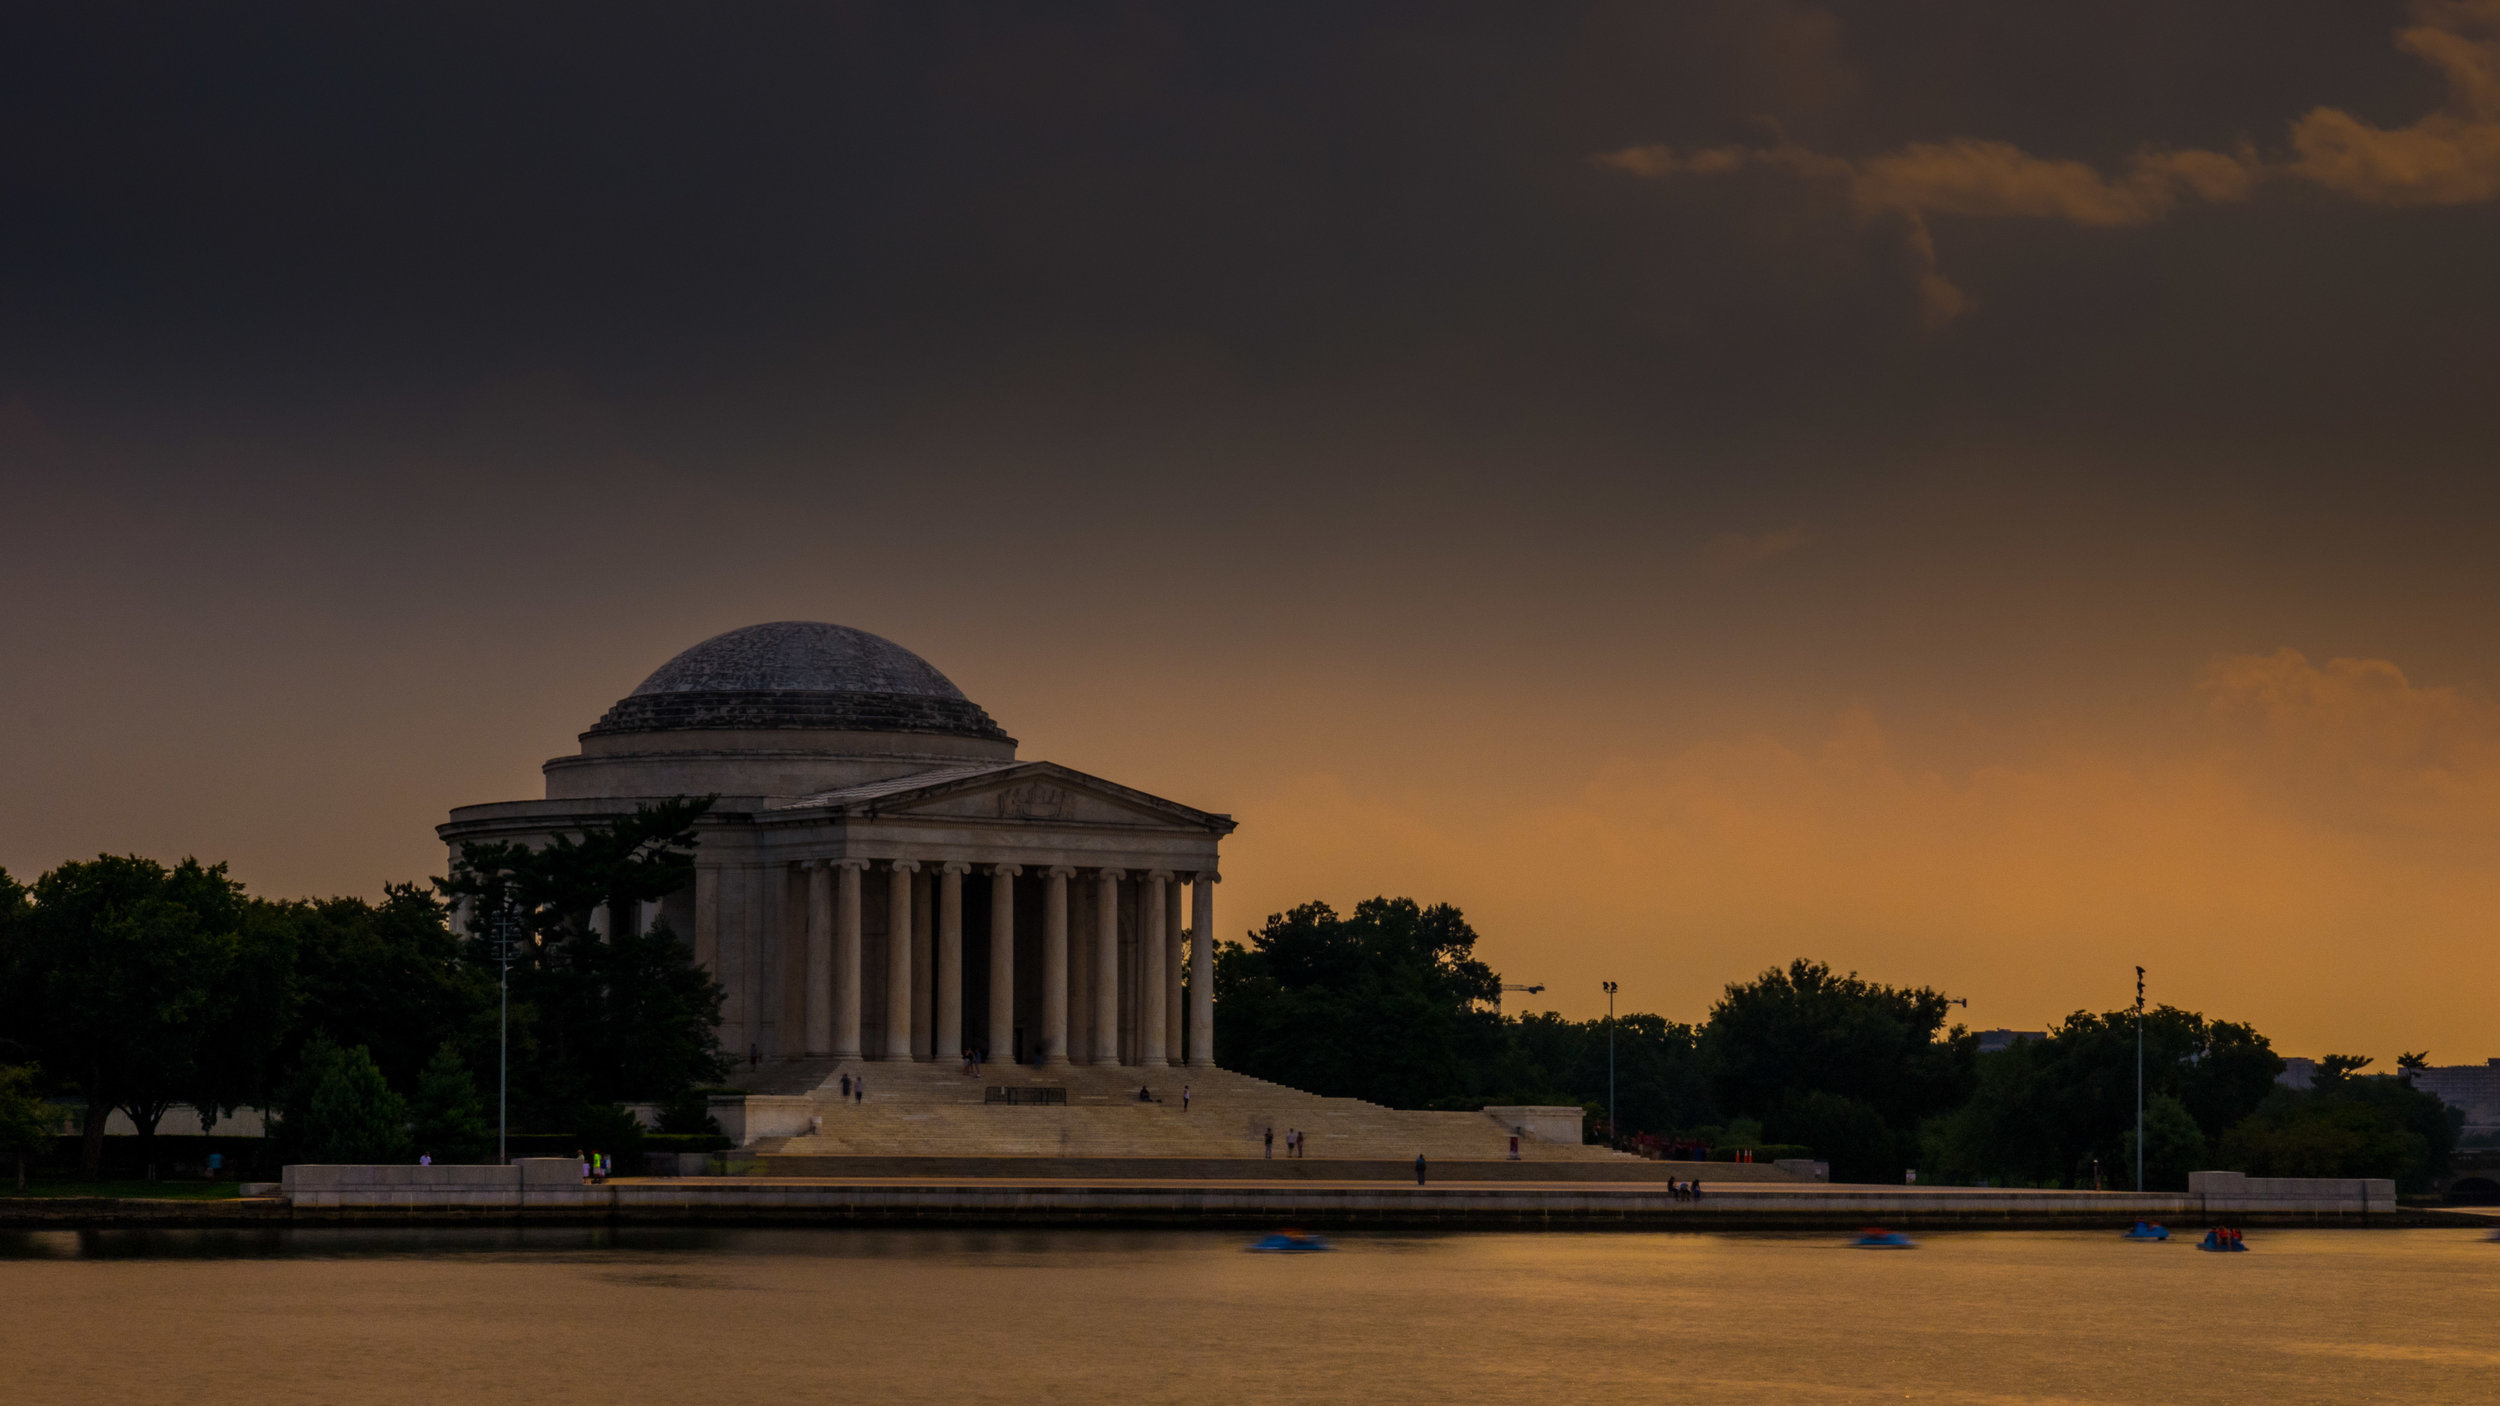 The early version of the Jefferson Memorial image that was used to create the final composition